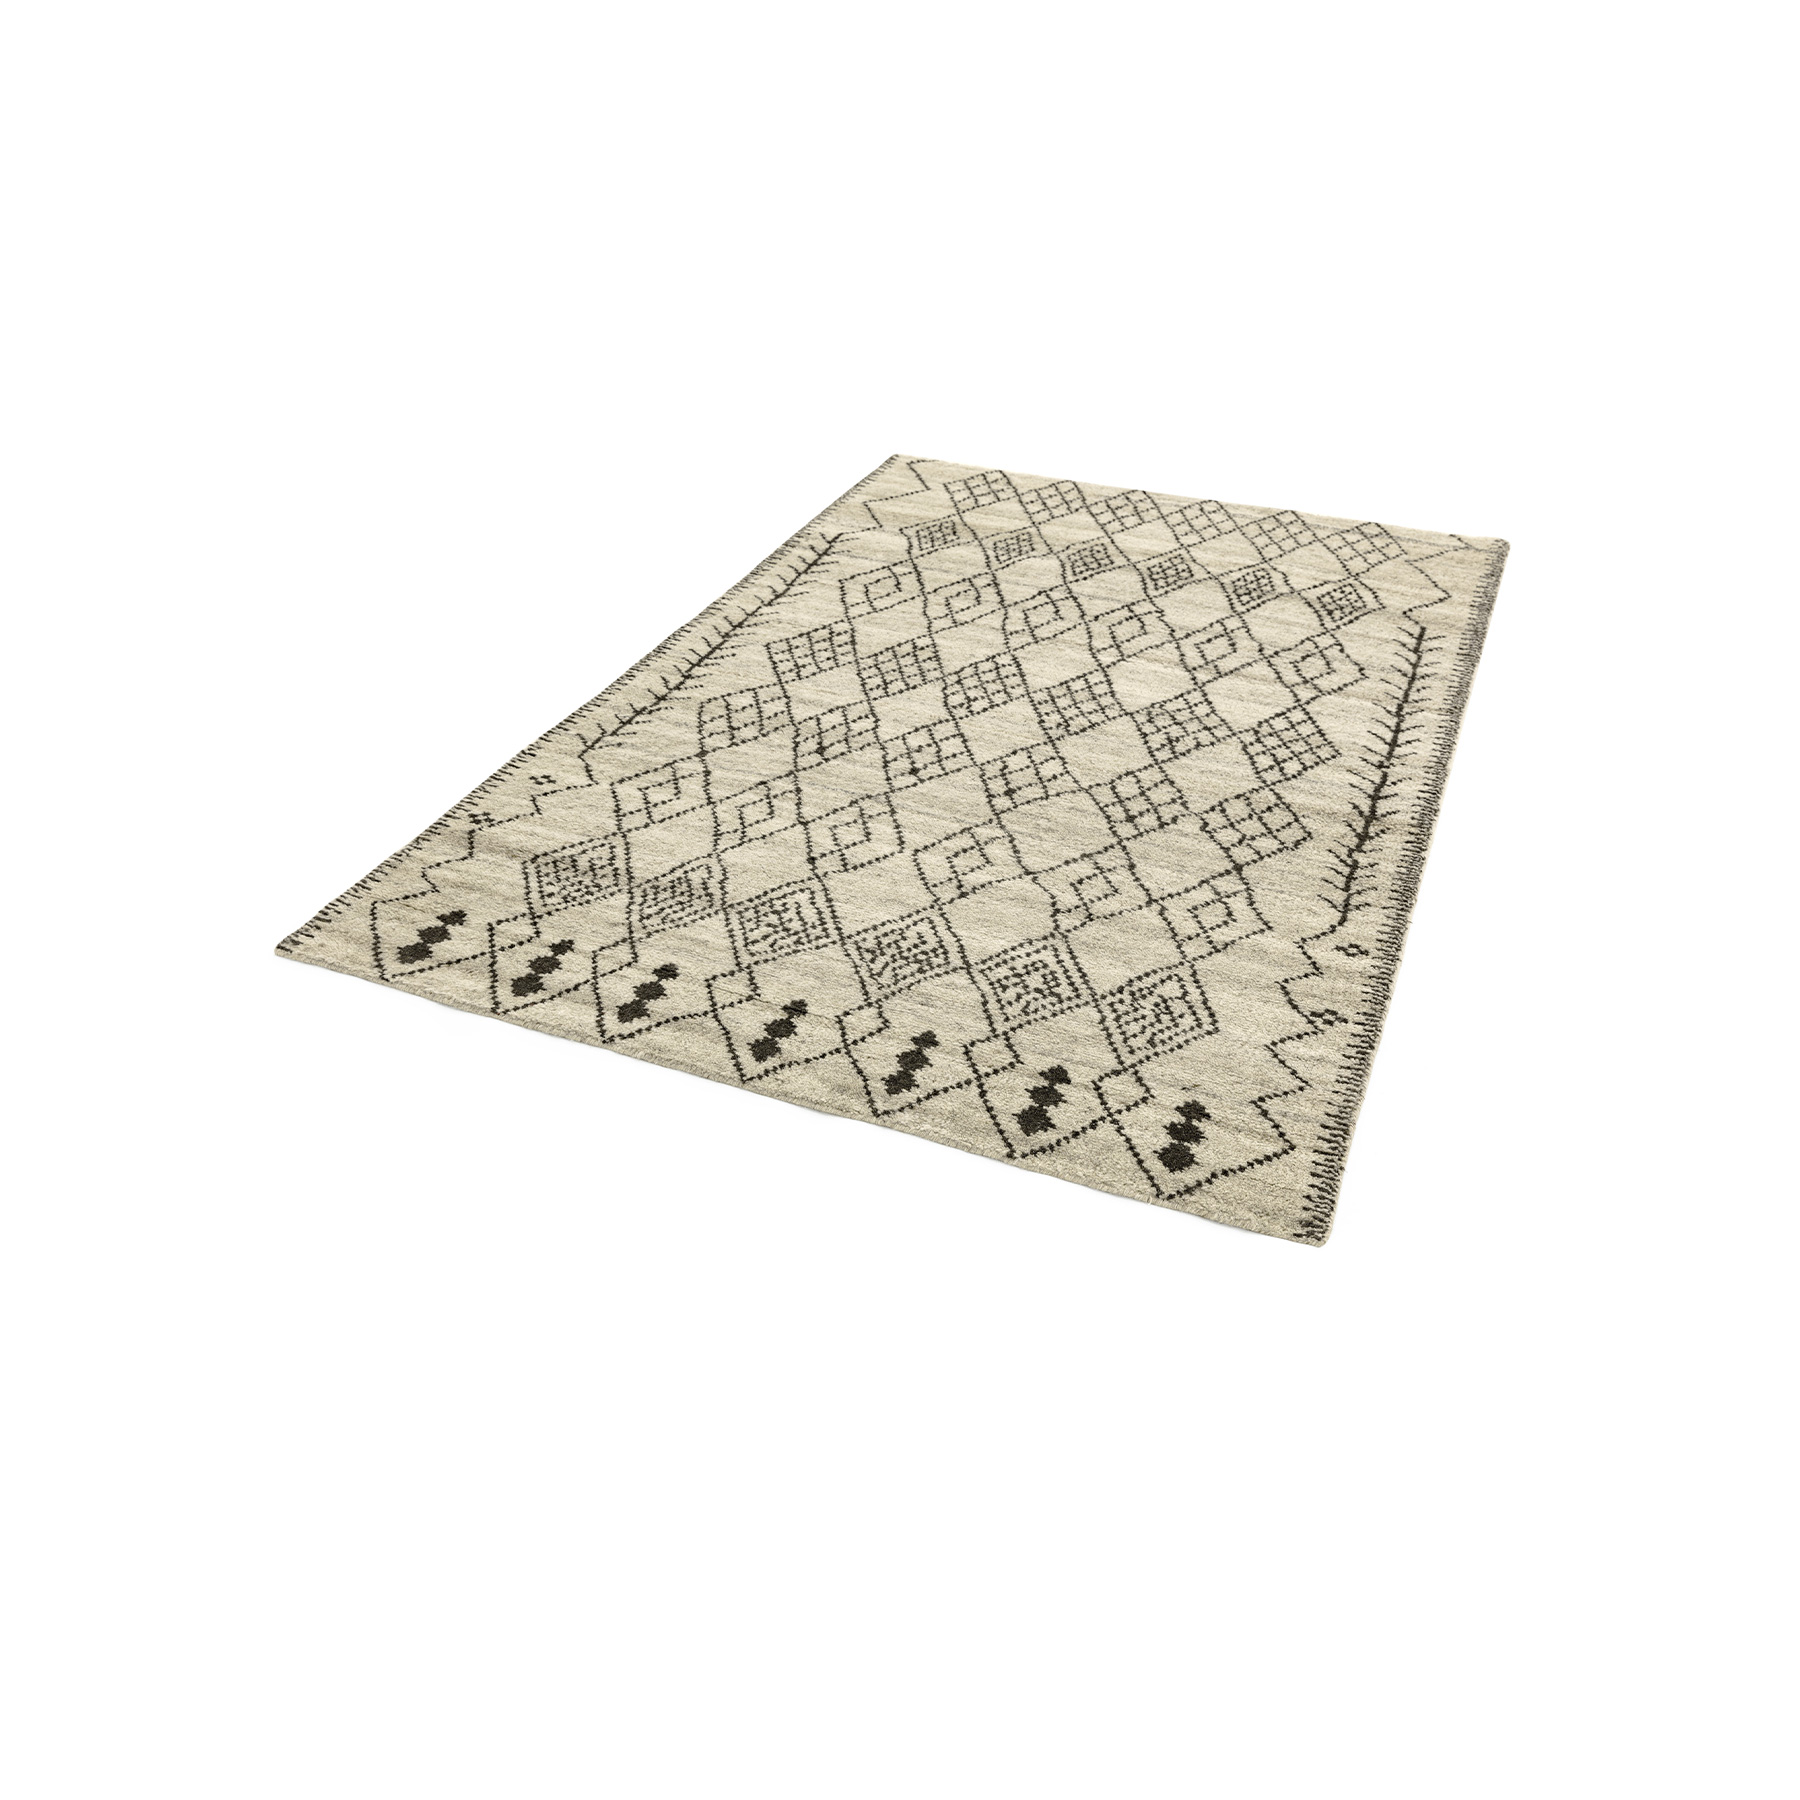 Amira 01 Rug - <p>Part of the Classica Heritage Collection, timeless oriental and Persians deisgns are refreshed for the present day. Classic looks and traditional crafts feature throughout for sophisticated style and long-lasting appearences. Amira is a hand-knotted rug with a Maroccan Berber look, washed for a softer feel. Avaiable in different sizes.</p>